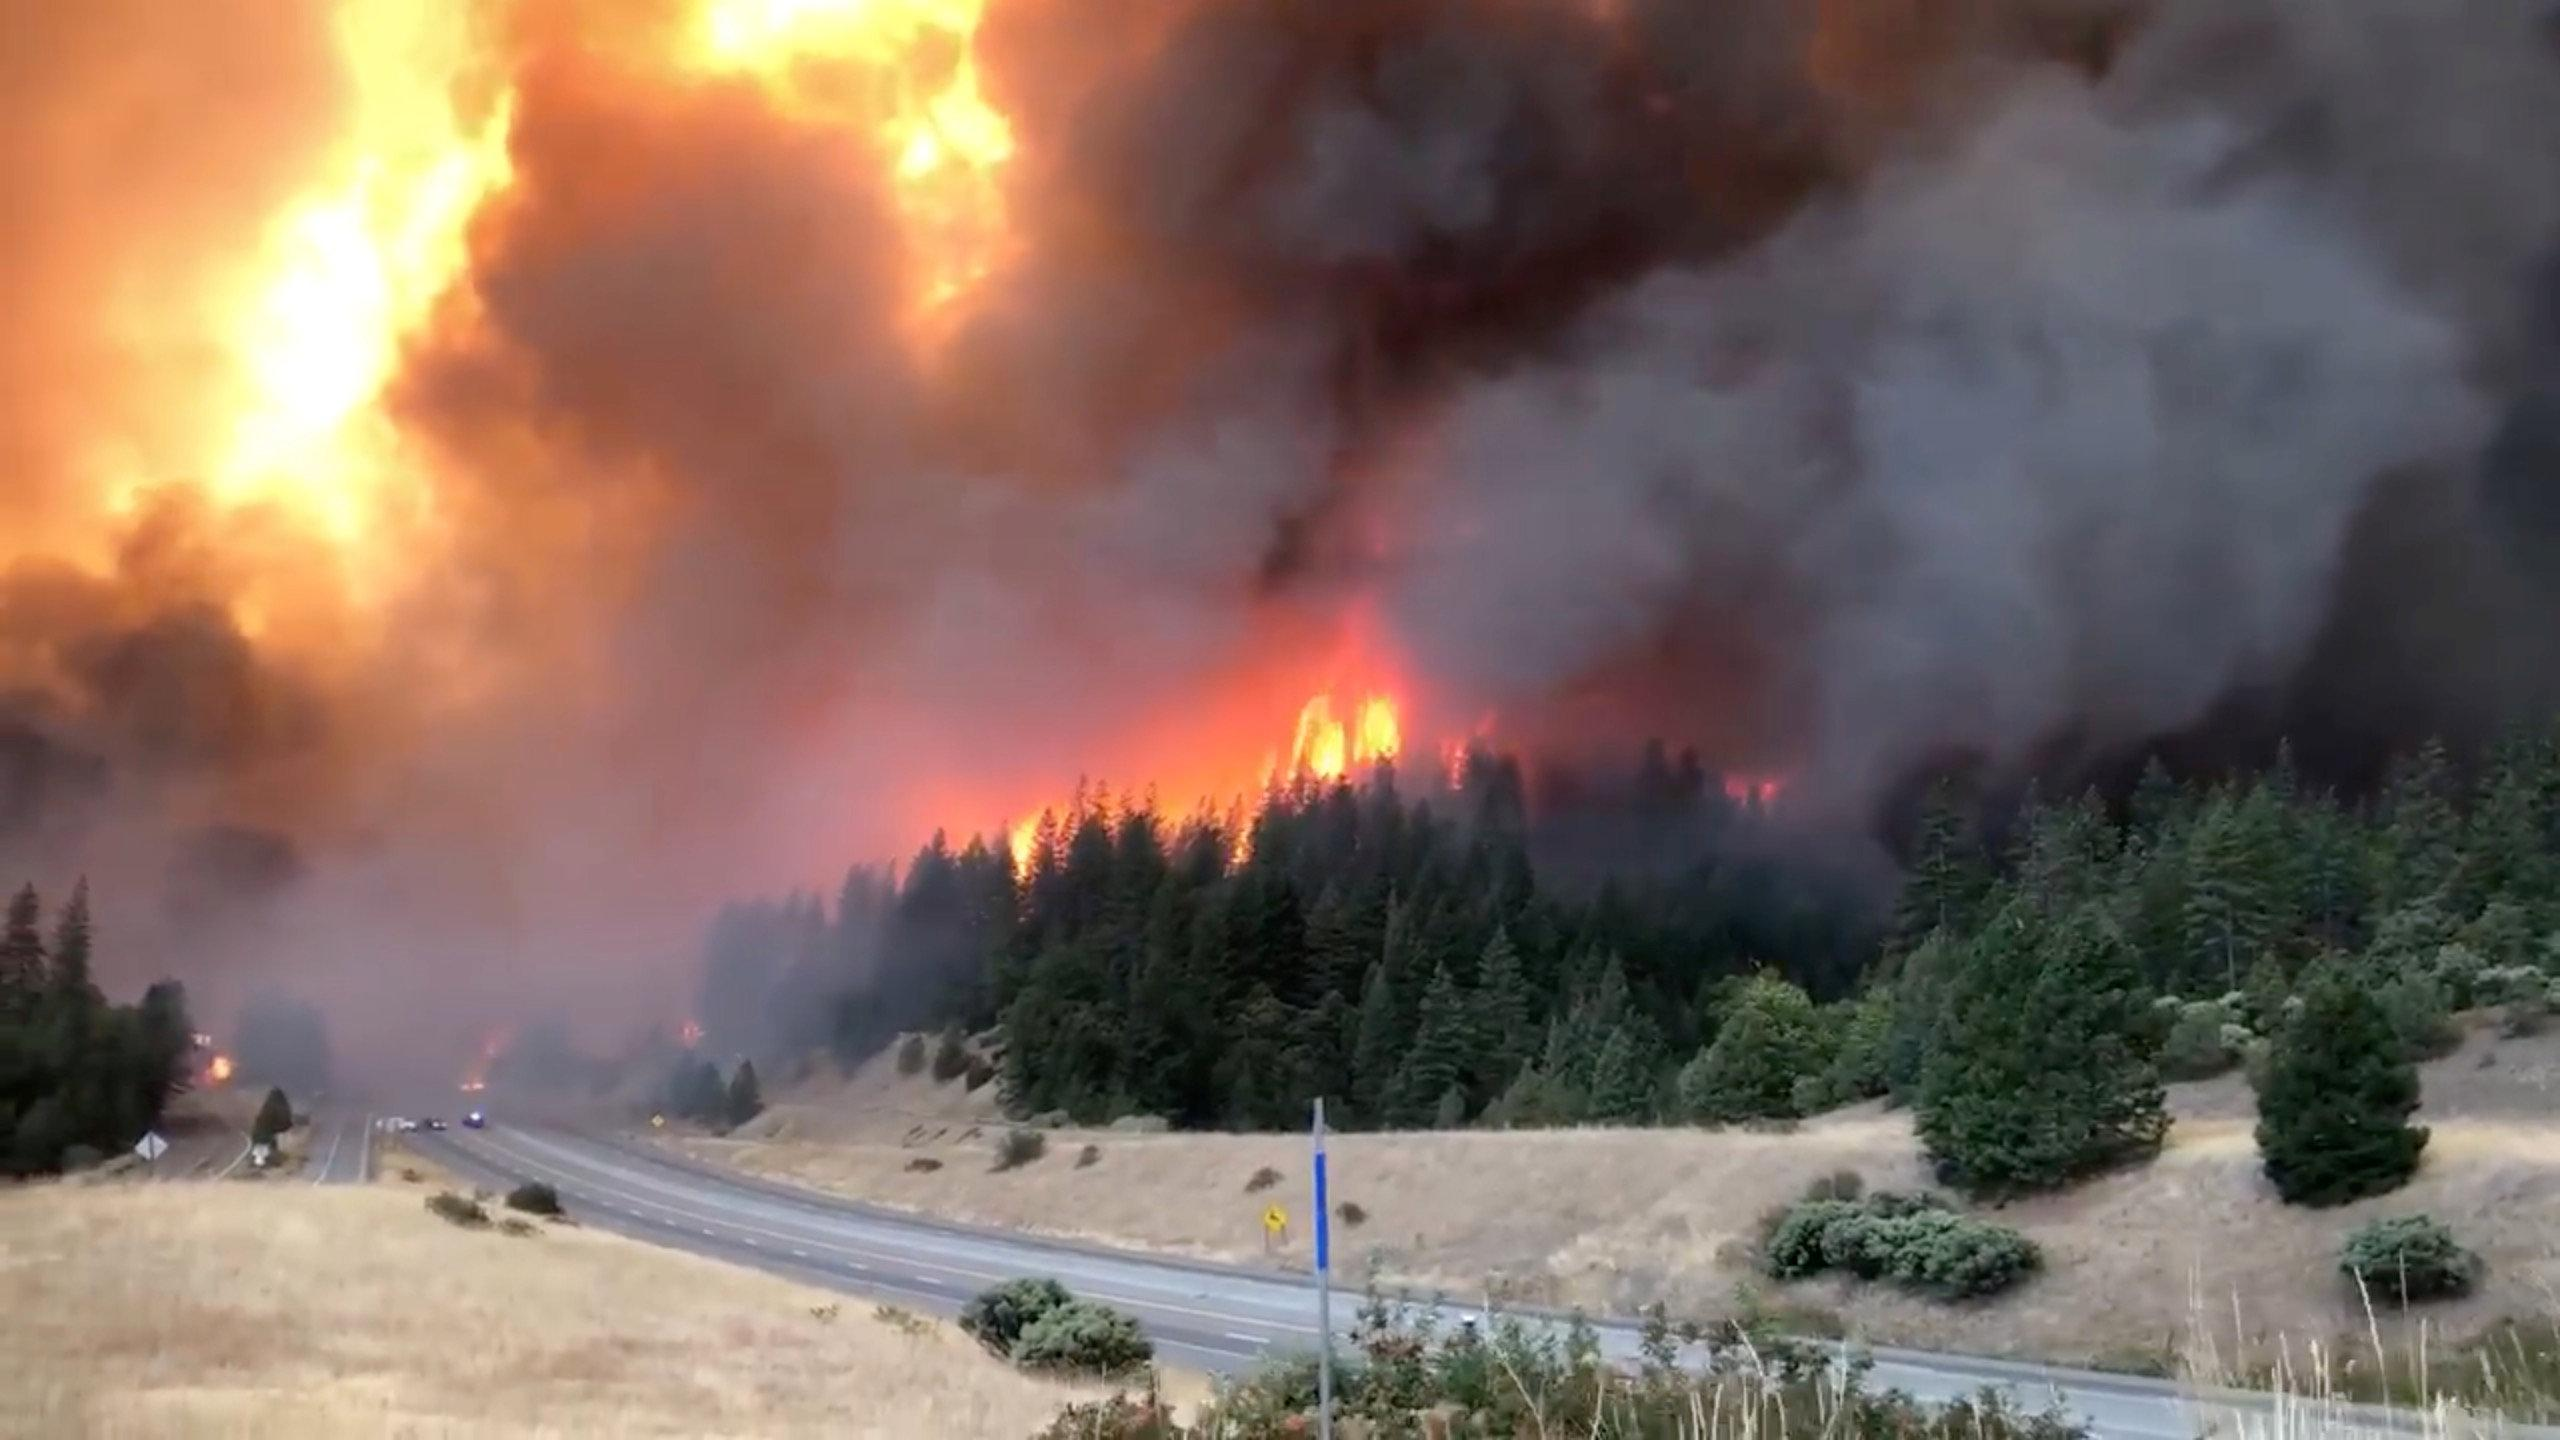 Smoke rises as the large delta fire spreads along Shasta County in California, U.S., September 5, 2018 in this picture obtained on September 6, 2018 from a social media video. CALIFORNIA HIGHWAY PATROL/via